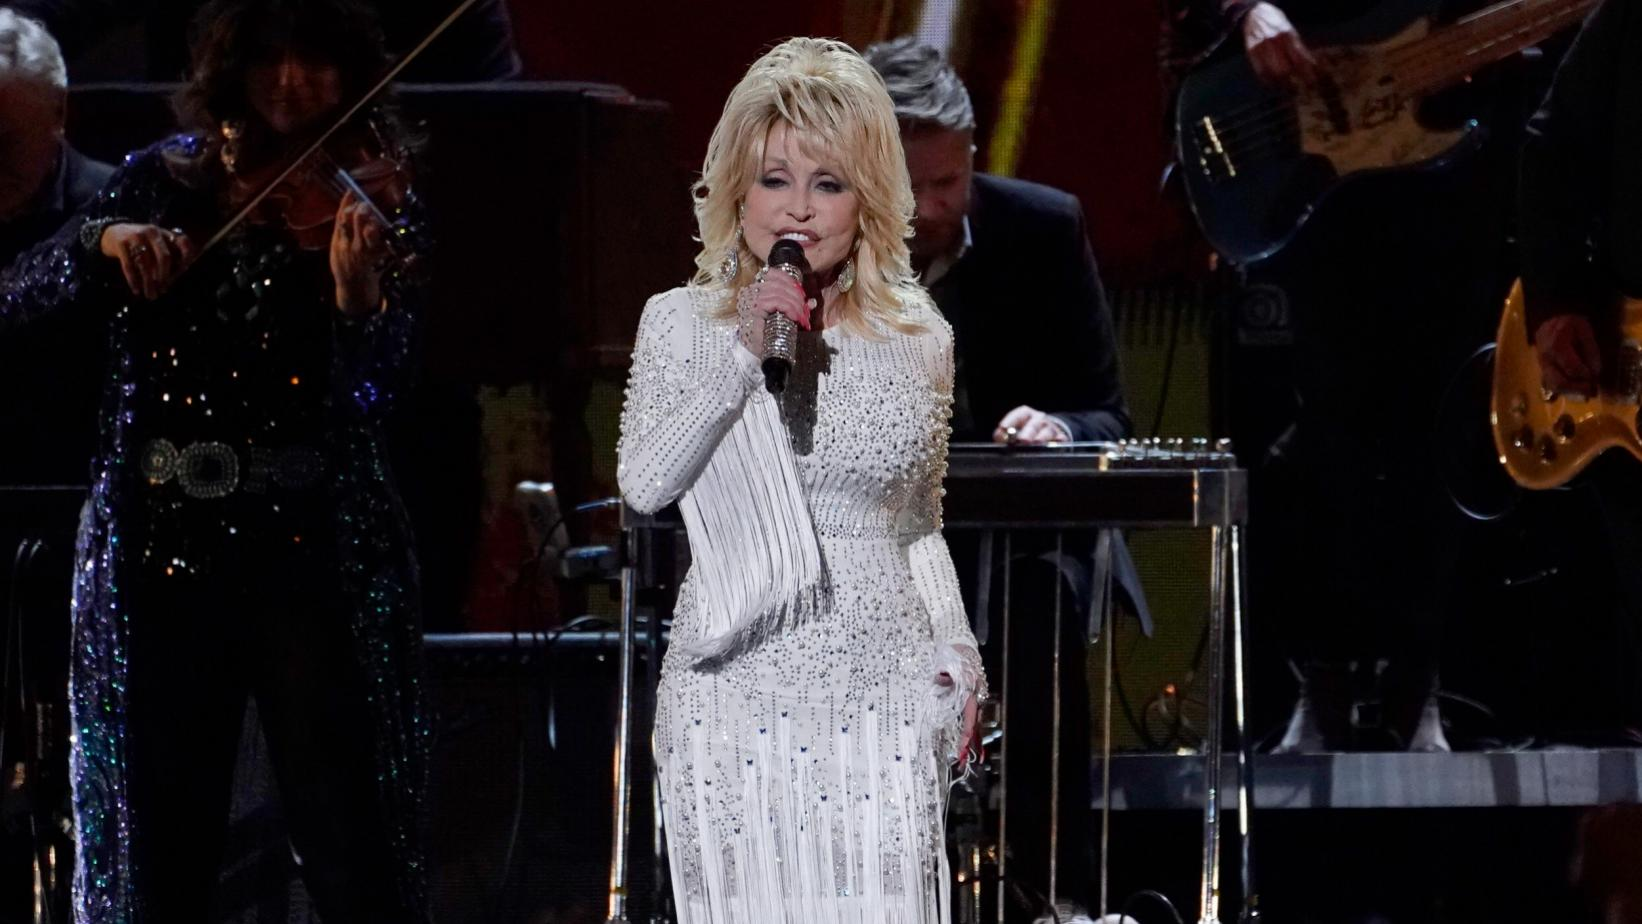 Dolly Parton sings on stage in a white fringed dress